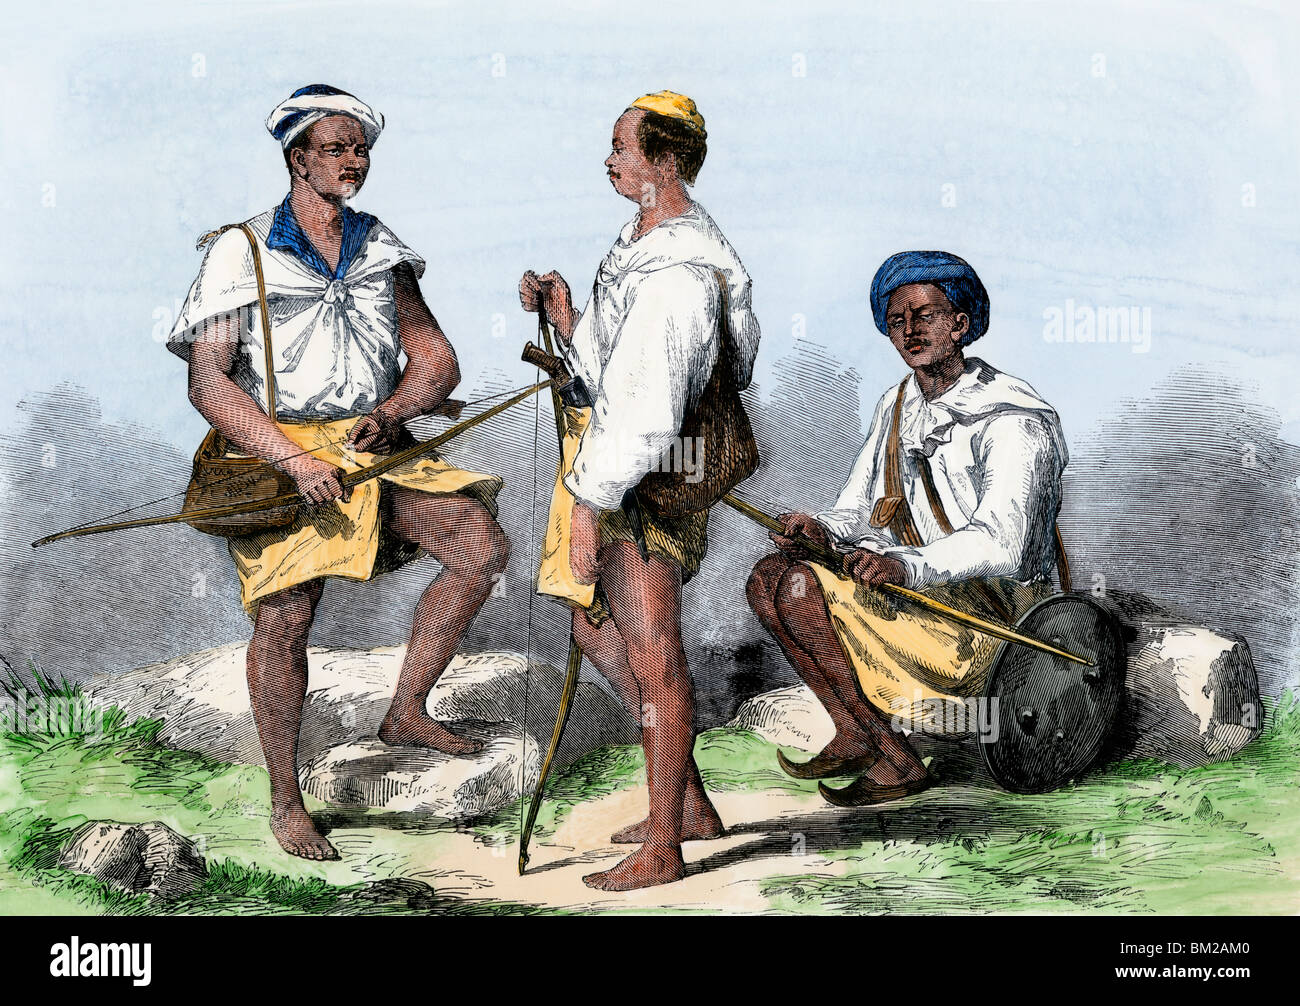 Goorkahs serving in the British military during Sepoy Mutiny, India, 1850s. Hand-colored woodcut - Stock Image